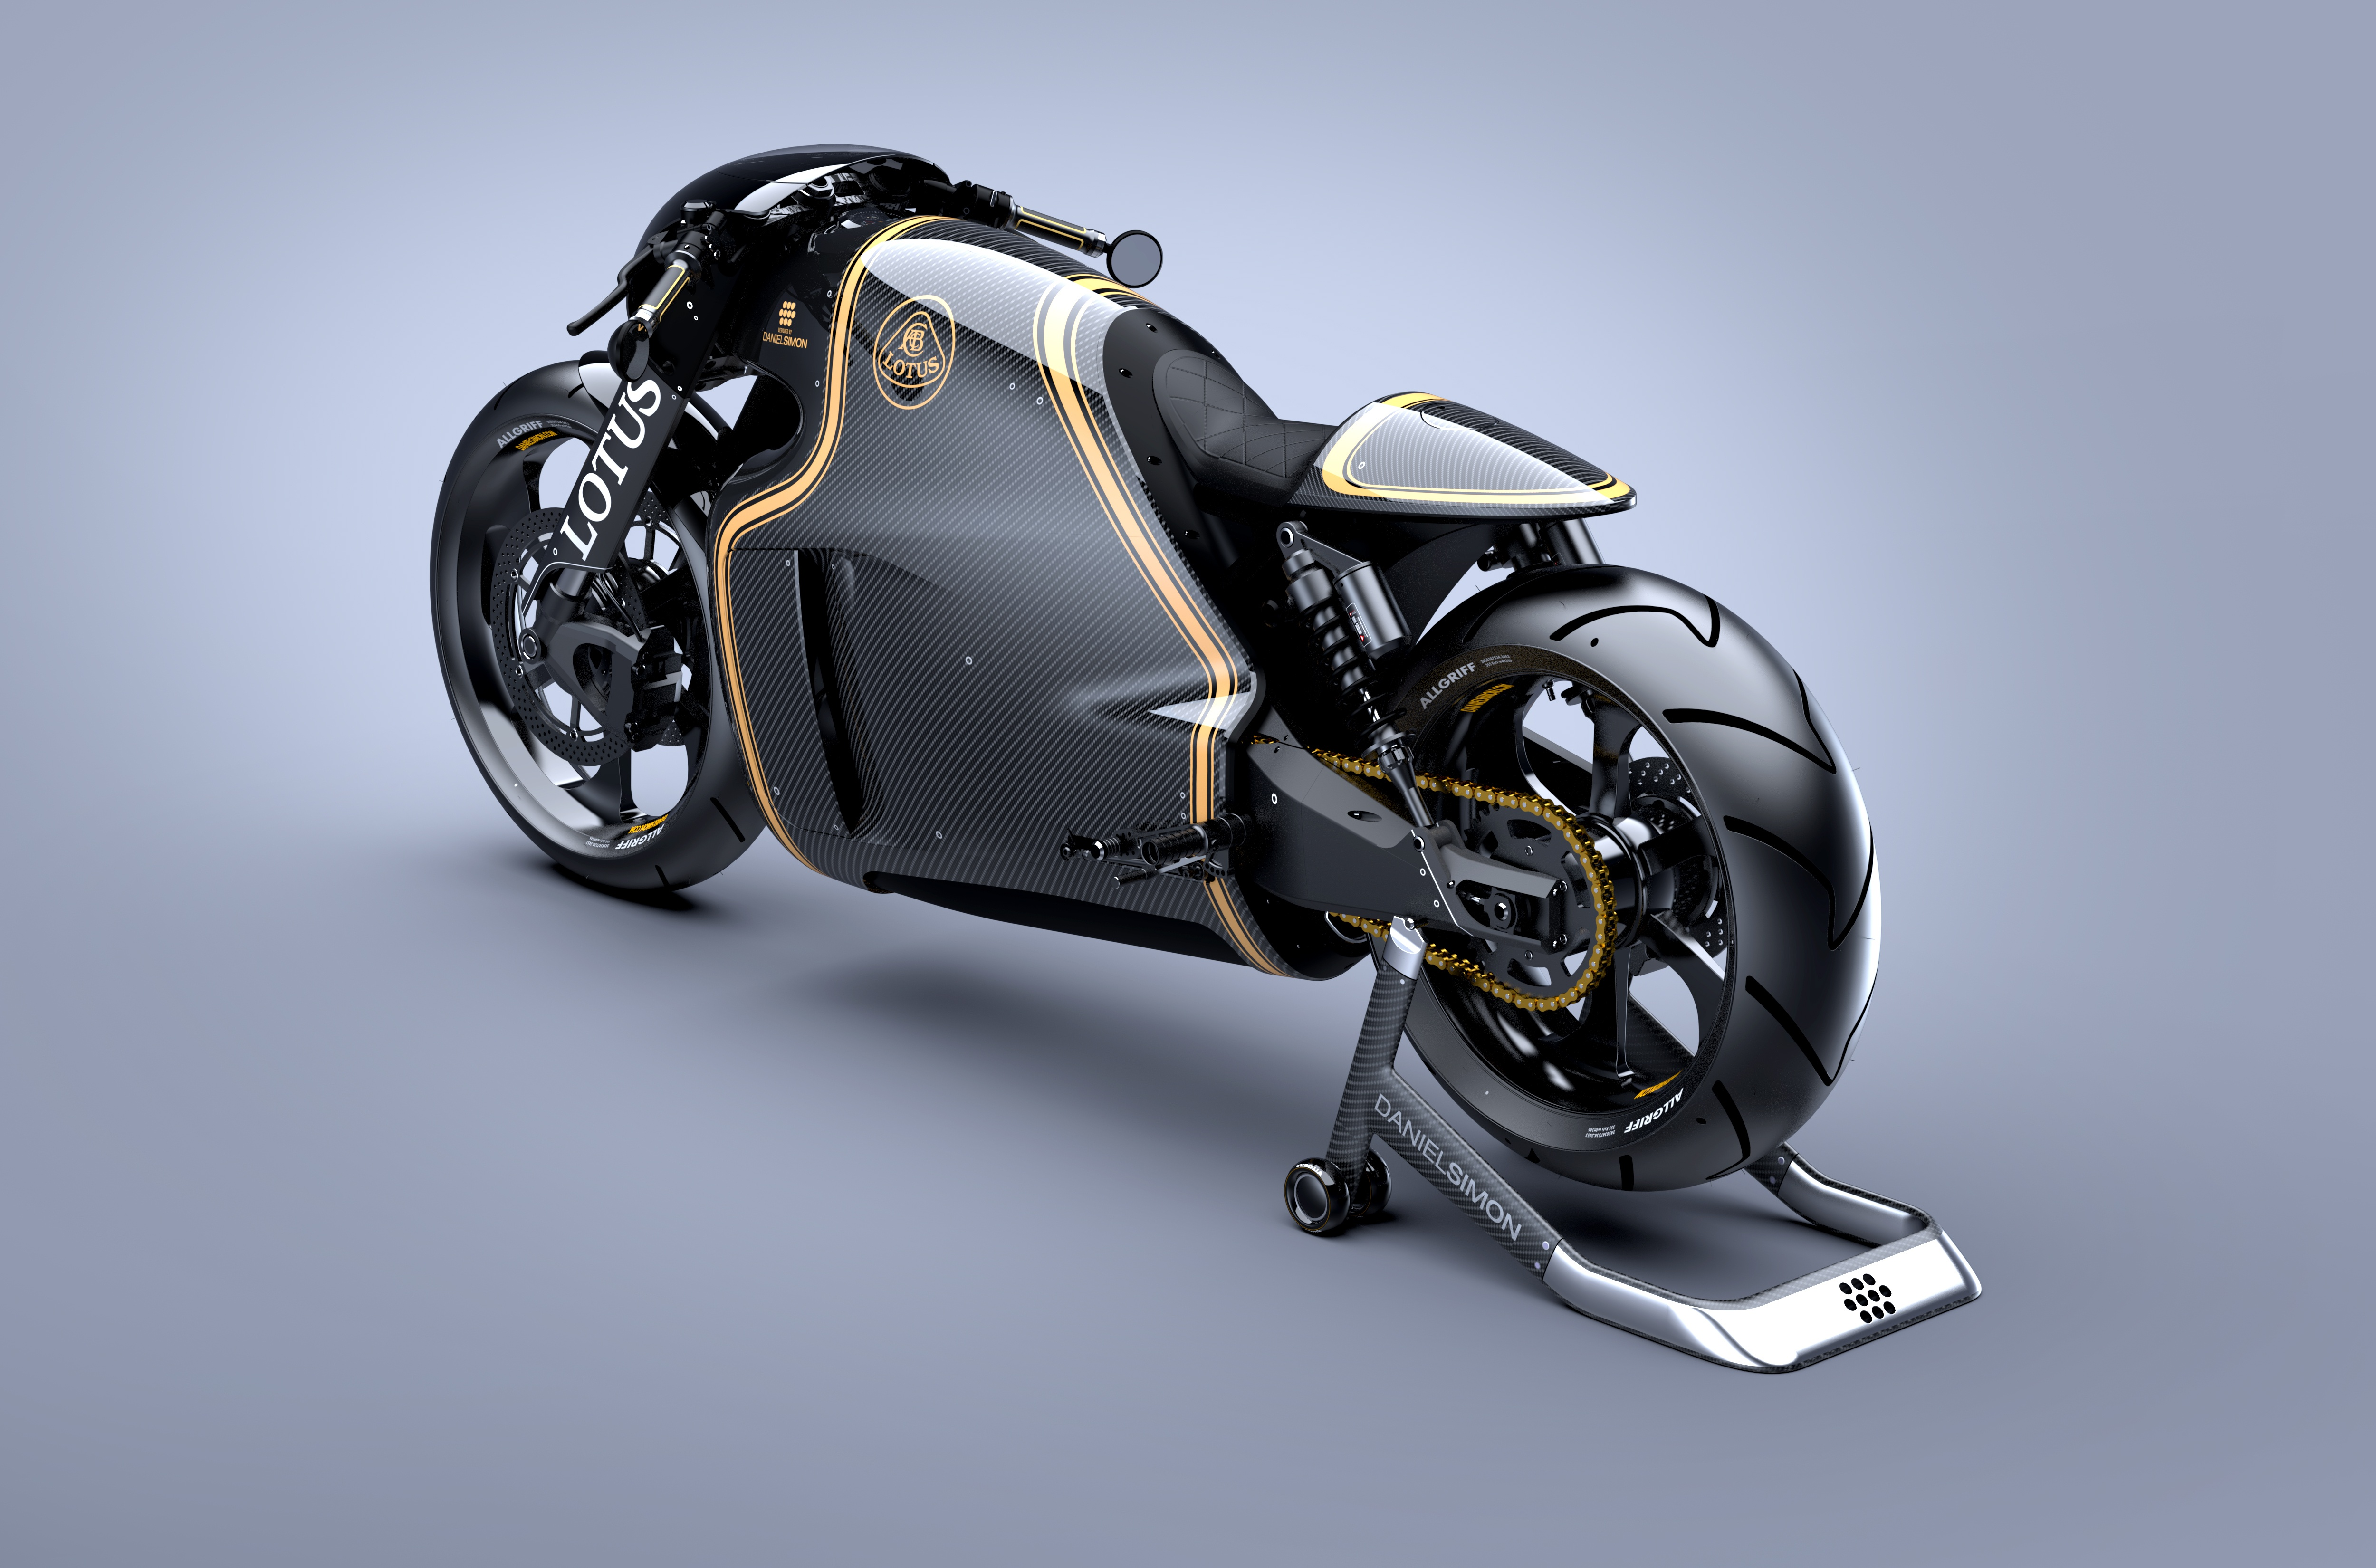 """The Lotus C-01: Classic """"Cafe Racer"""" Design meets Futuristic Styling"""